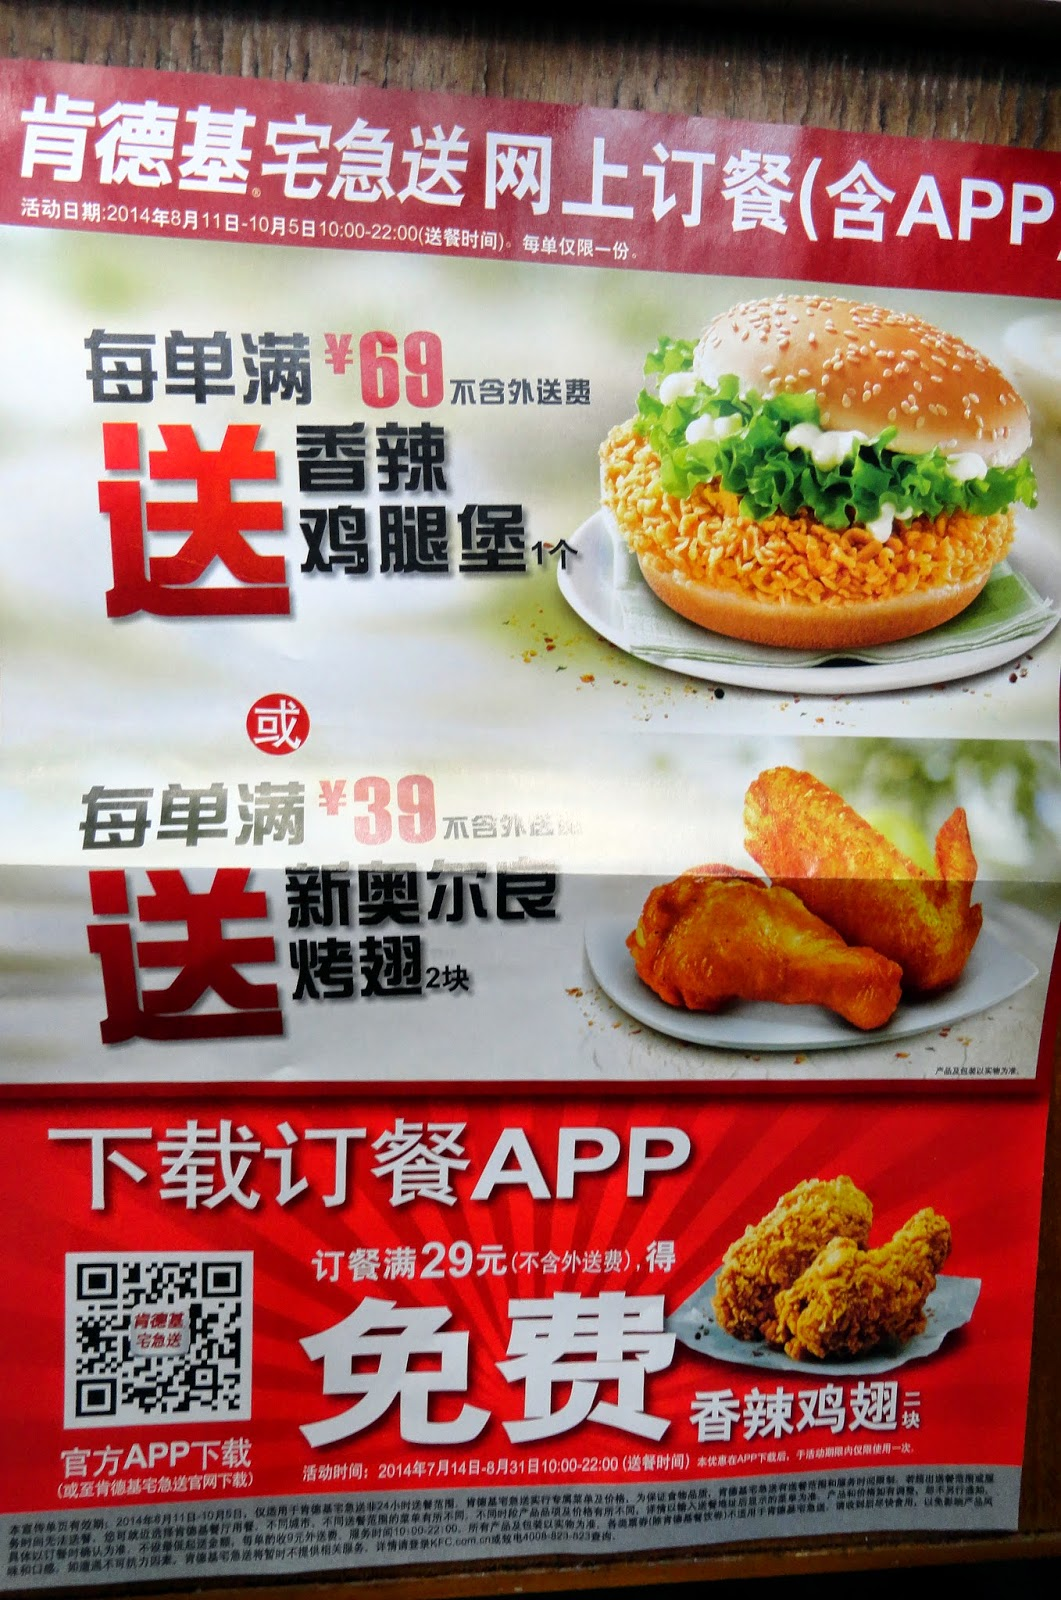 KFC advertisement in China